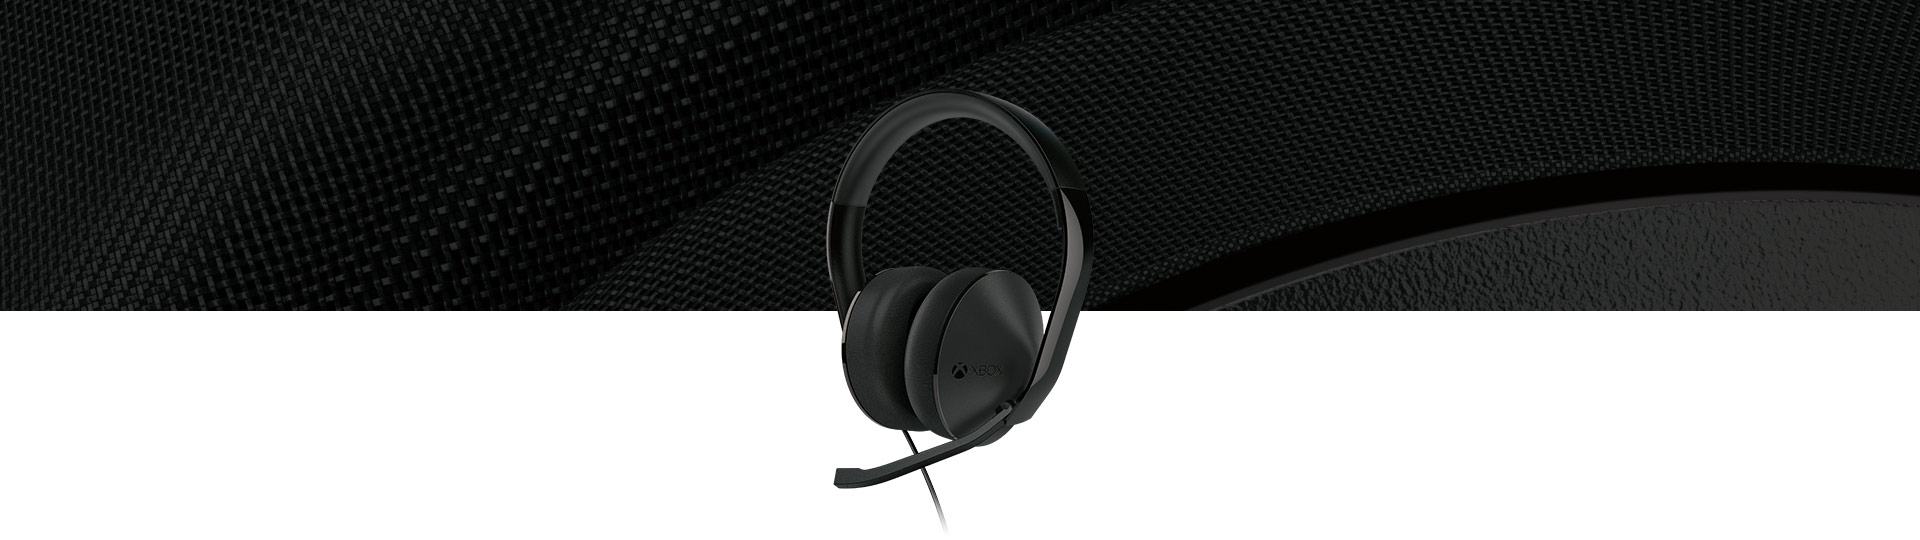 hight resolution of xbox one stereo headset